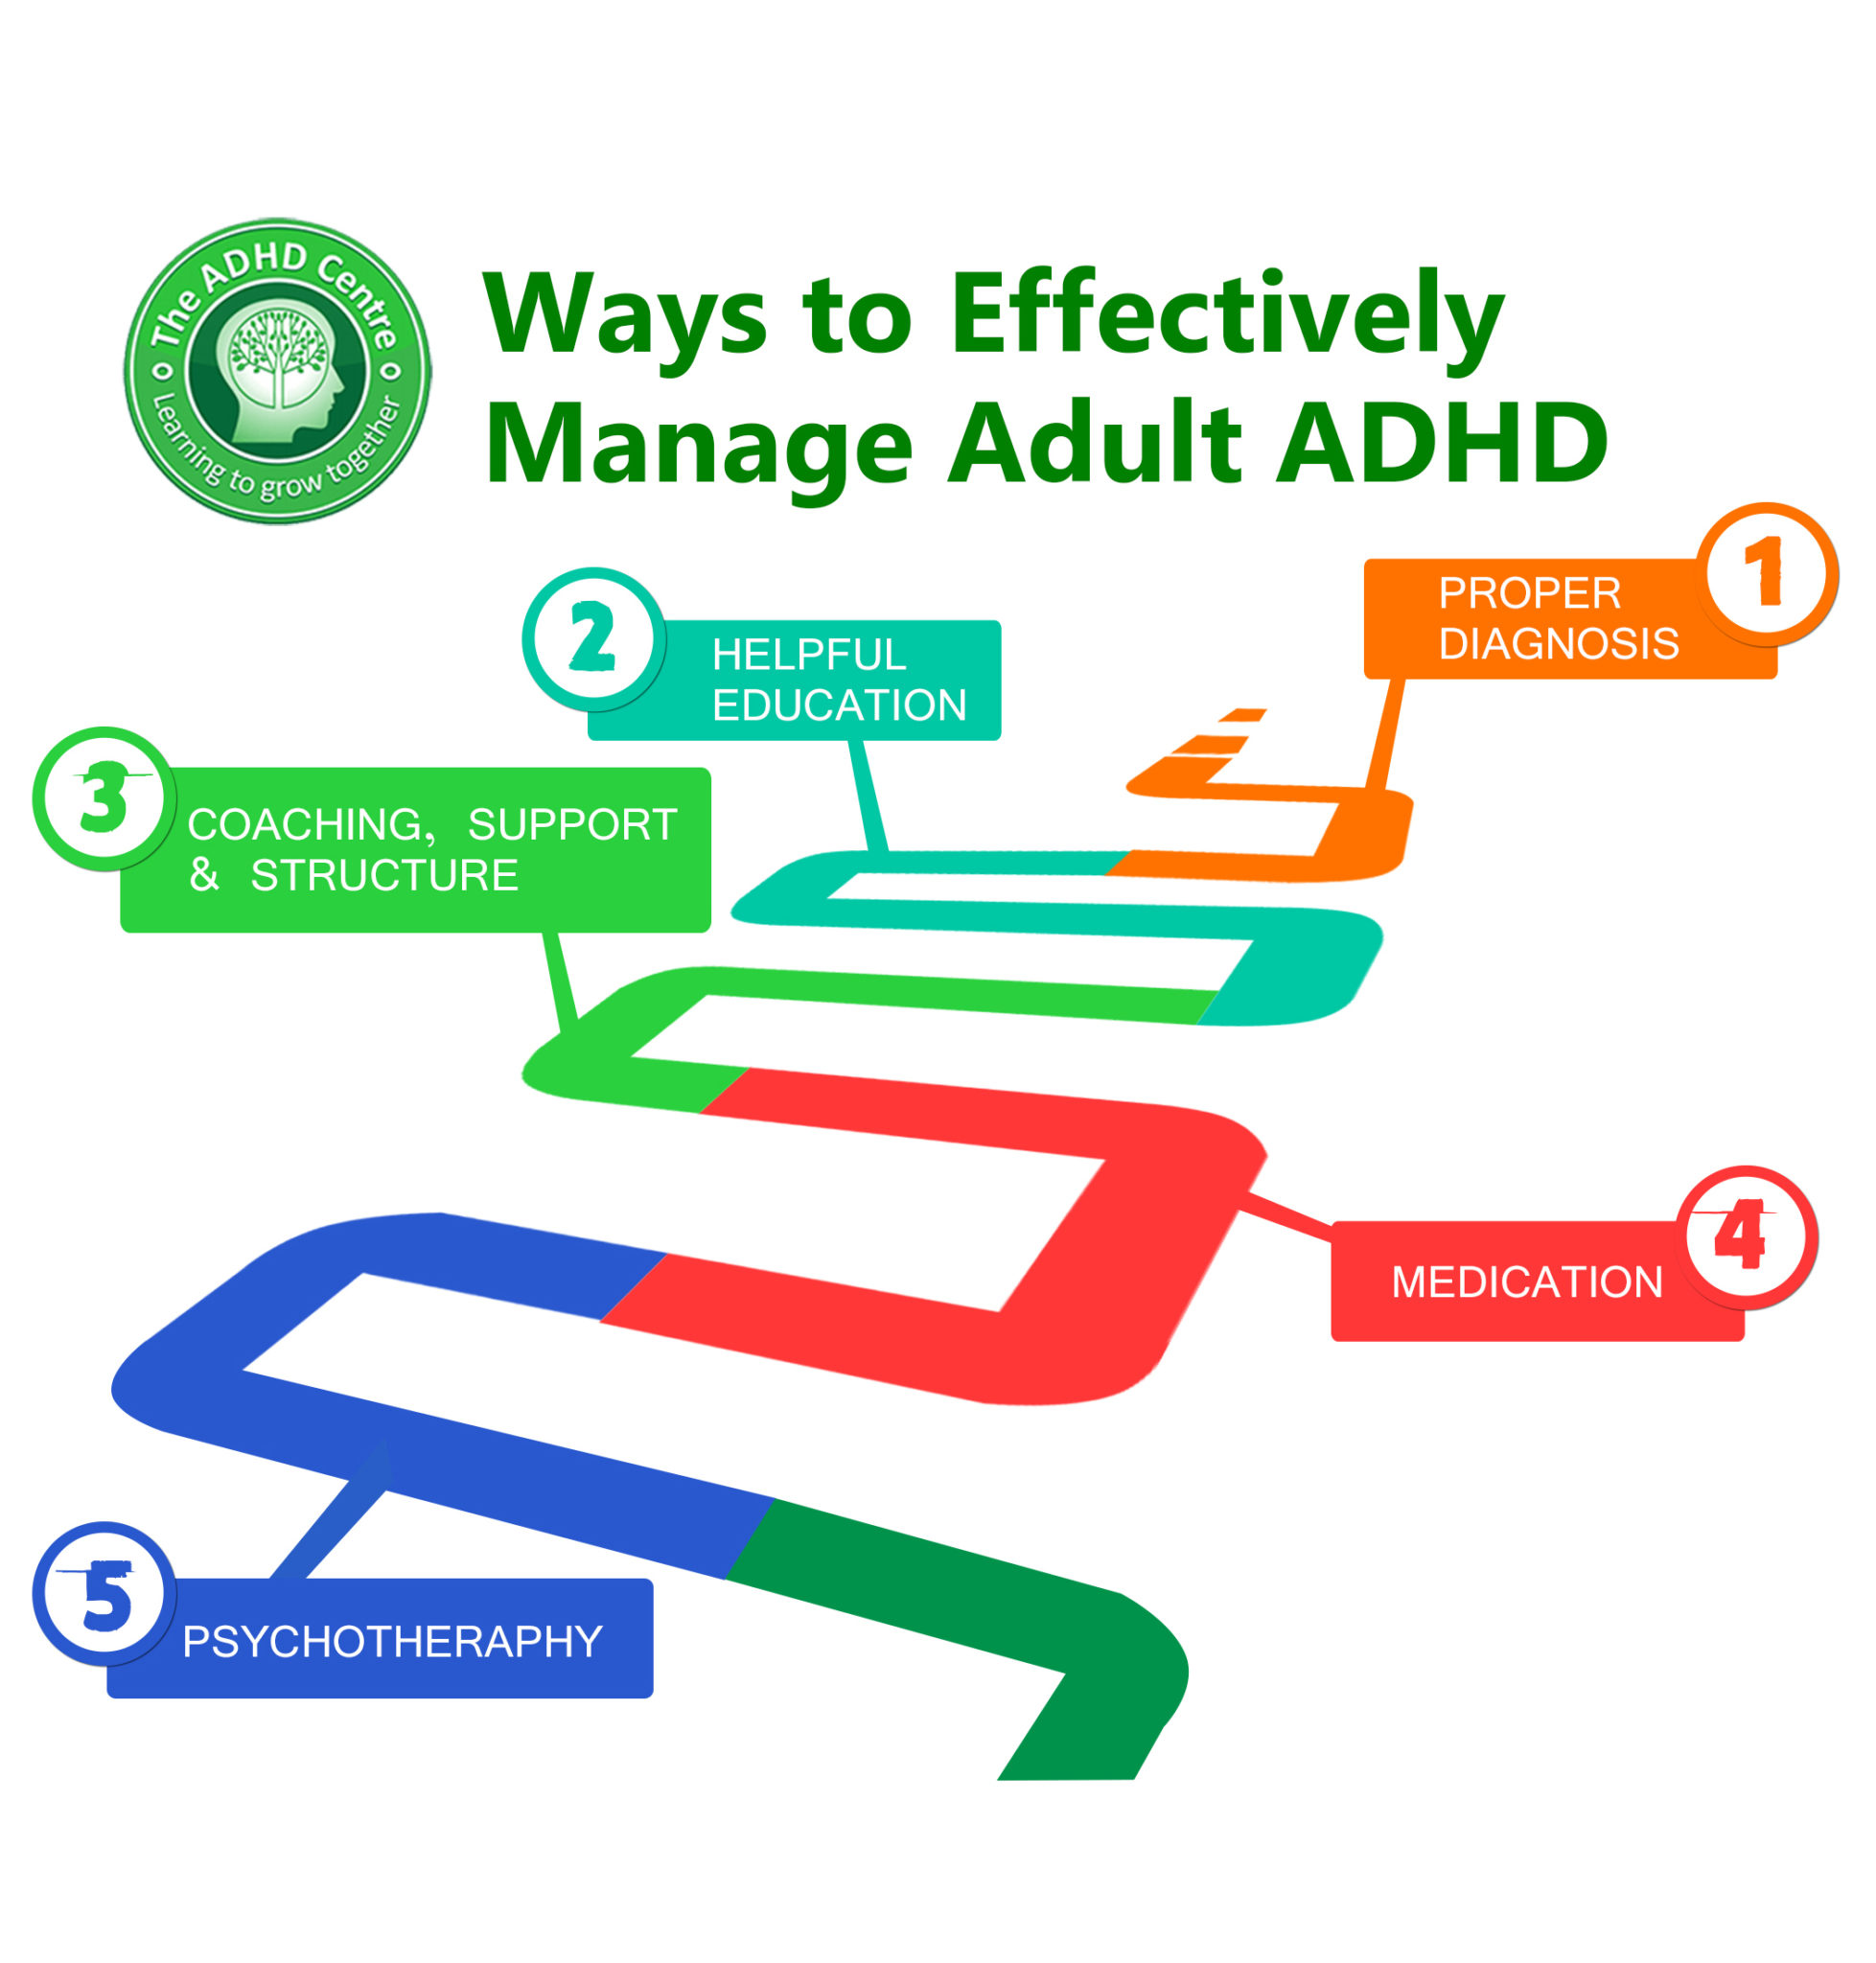 Ways to Effective Manage Adult ADHD